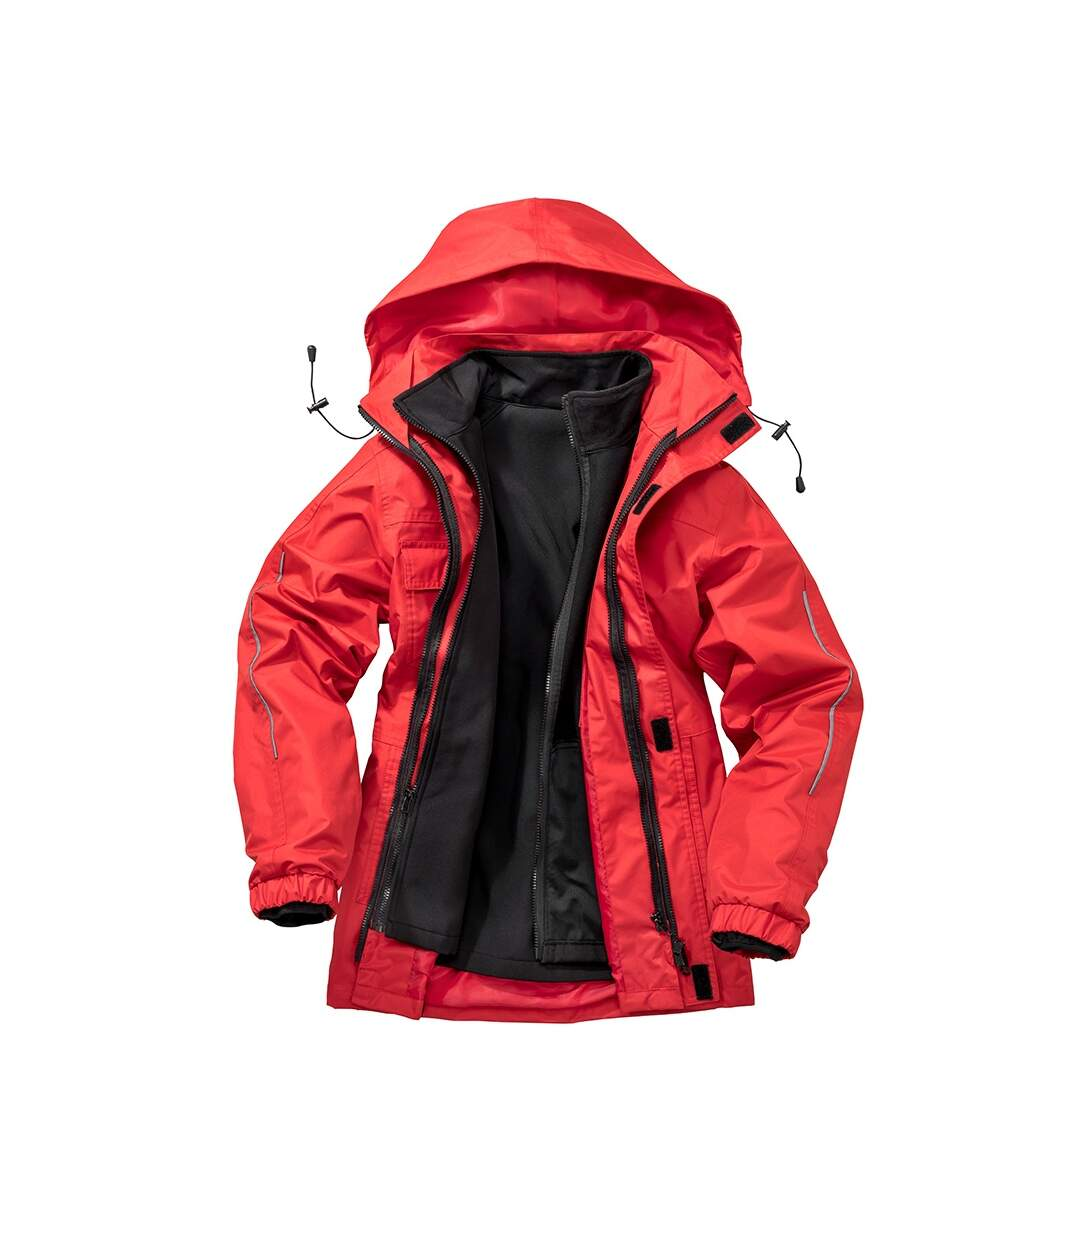 Result Core Mens Printable 3-In-1 Transit Jacket (Red) - UTPC2639